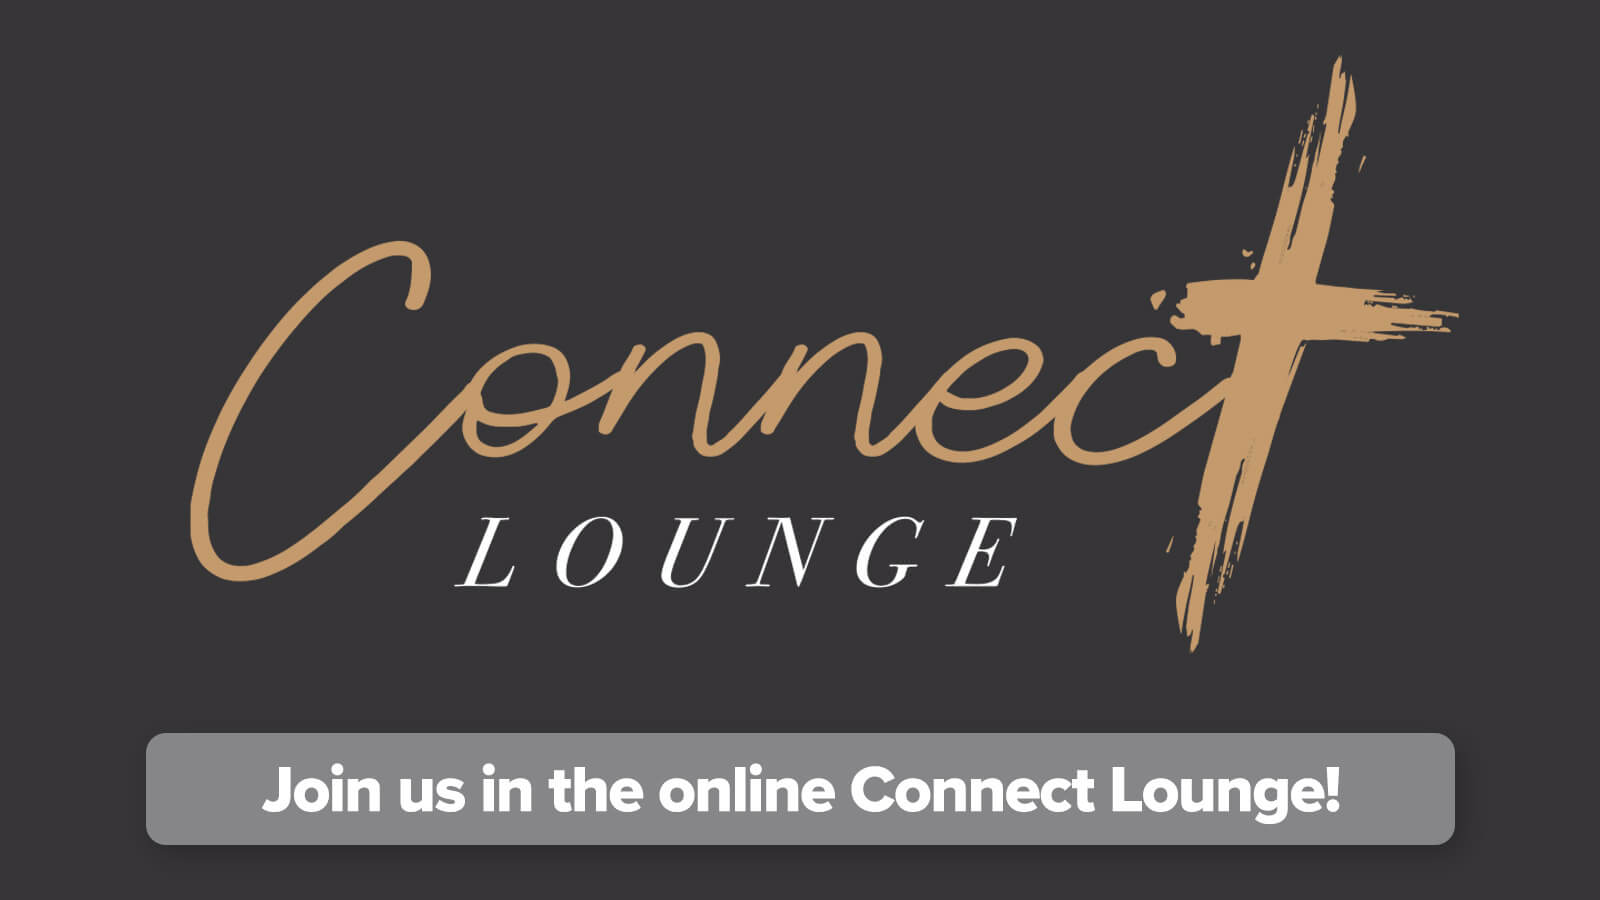 Are you new? Join us in our online Connect Lounge!